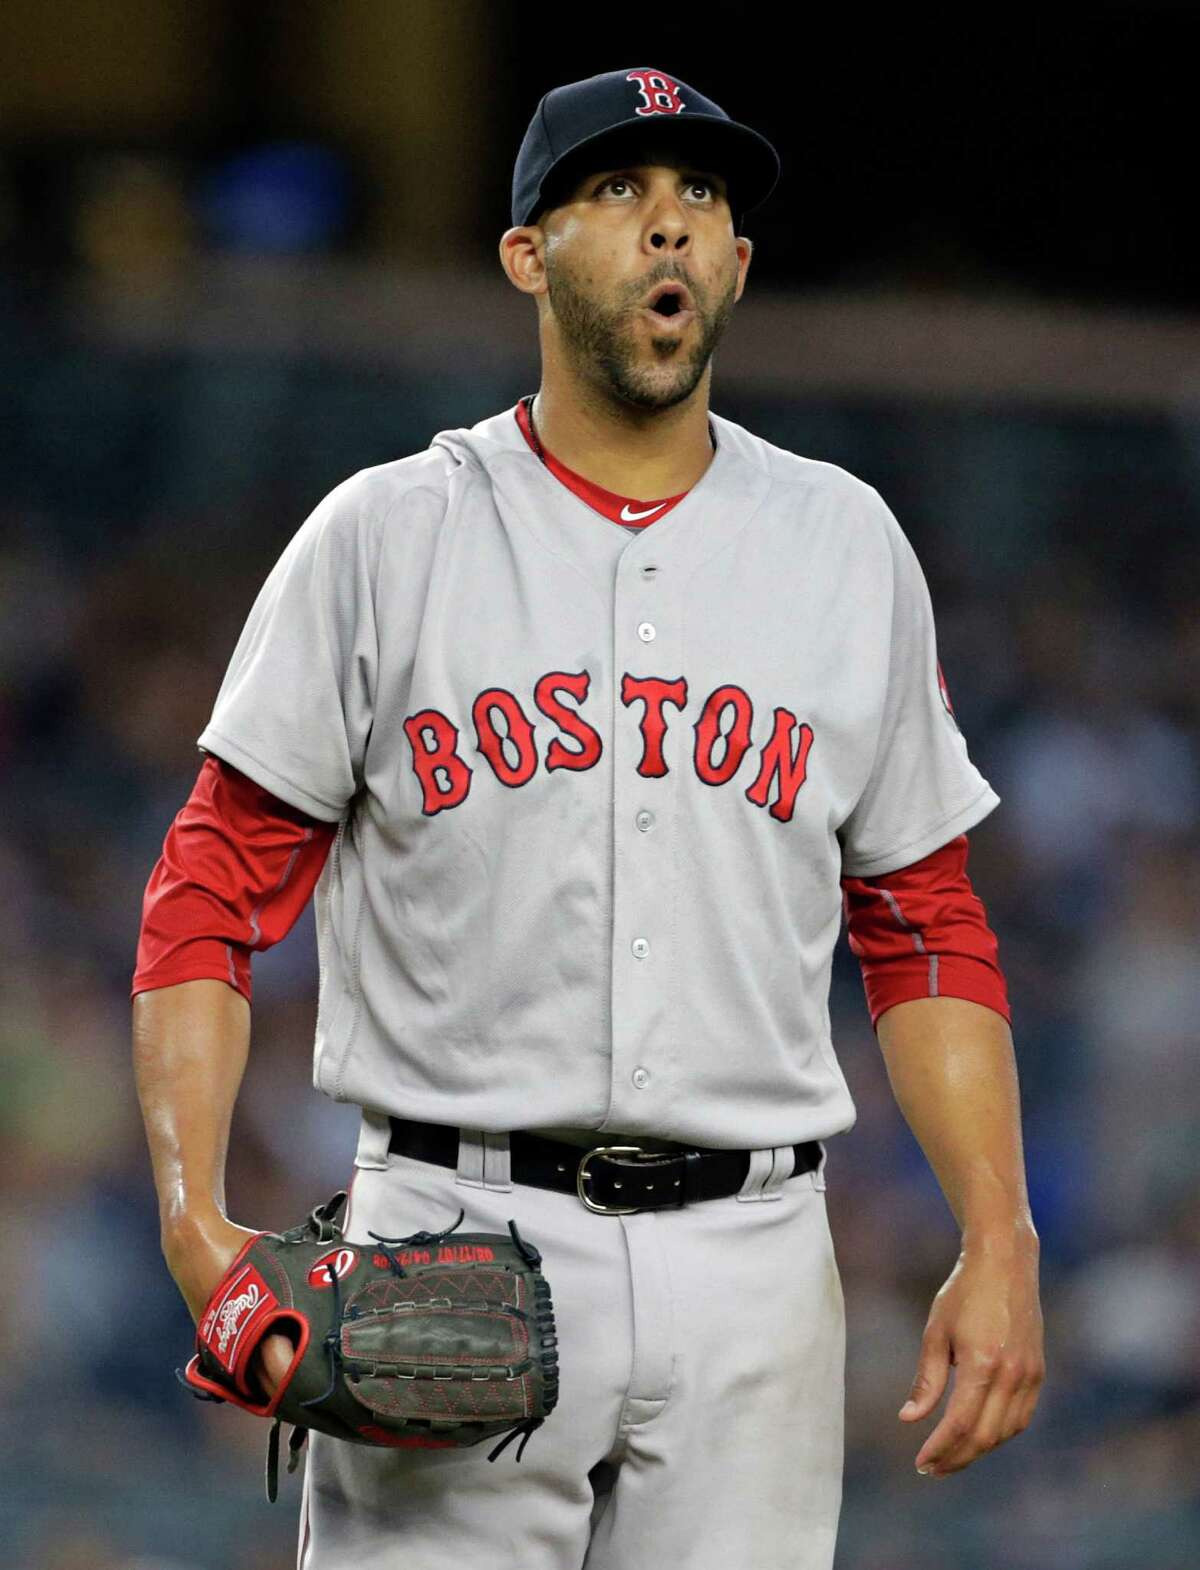 Boston Red Sox starting pitcher David Price reacts during the first inning of a baseball game against the New York Yankees on Sunday, July 17, 2016, in New York. (AP Photo/Adam Hunger) ORG XMIT: NYAH113